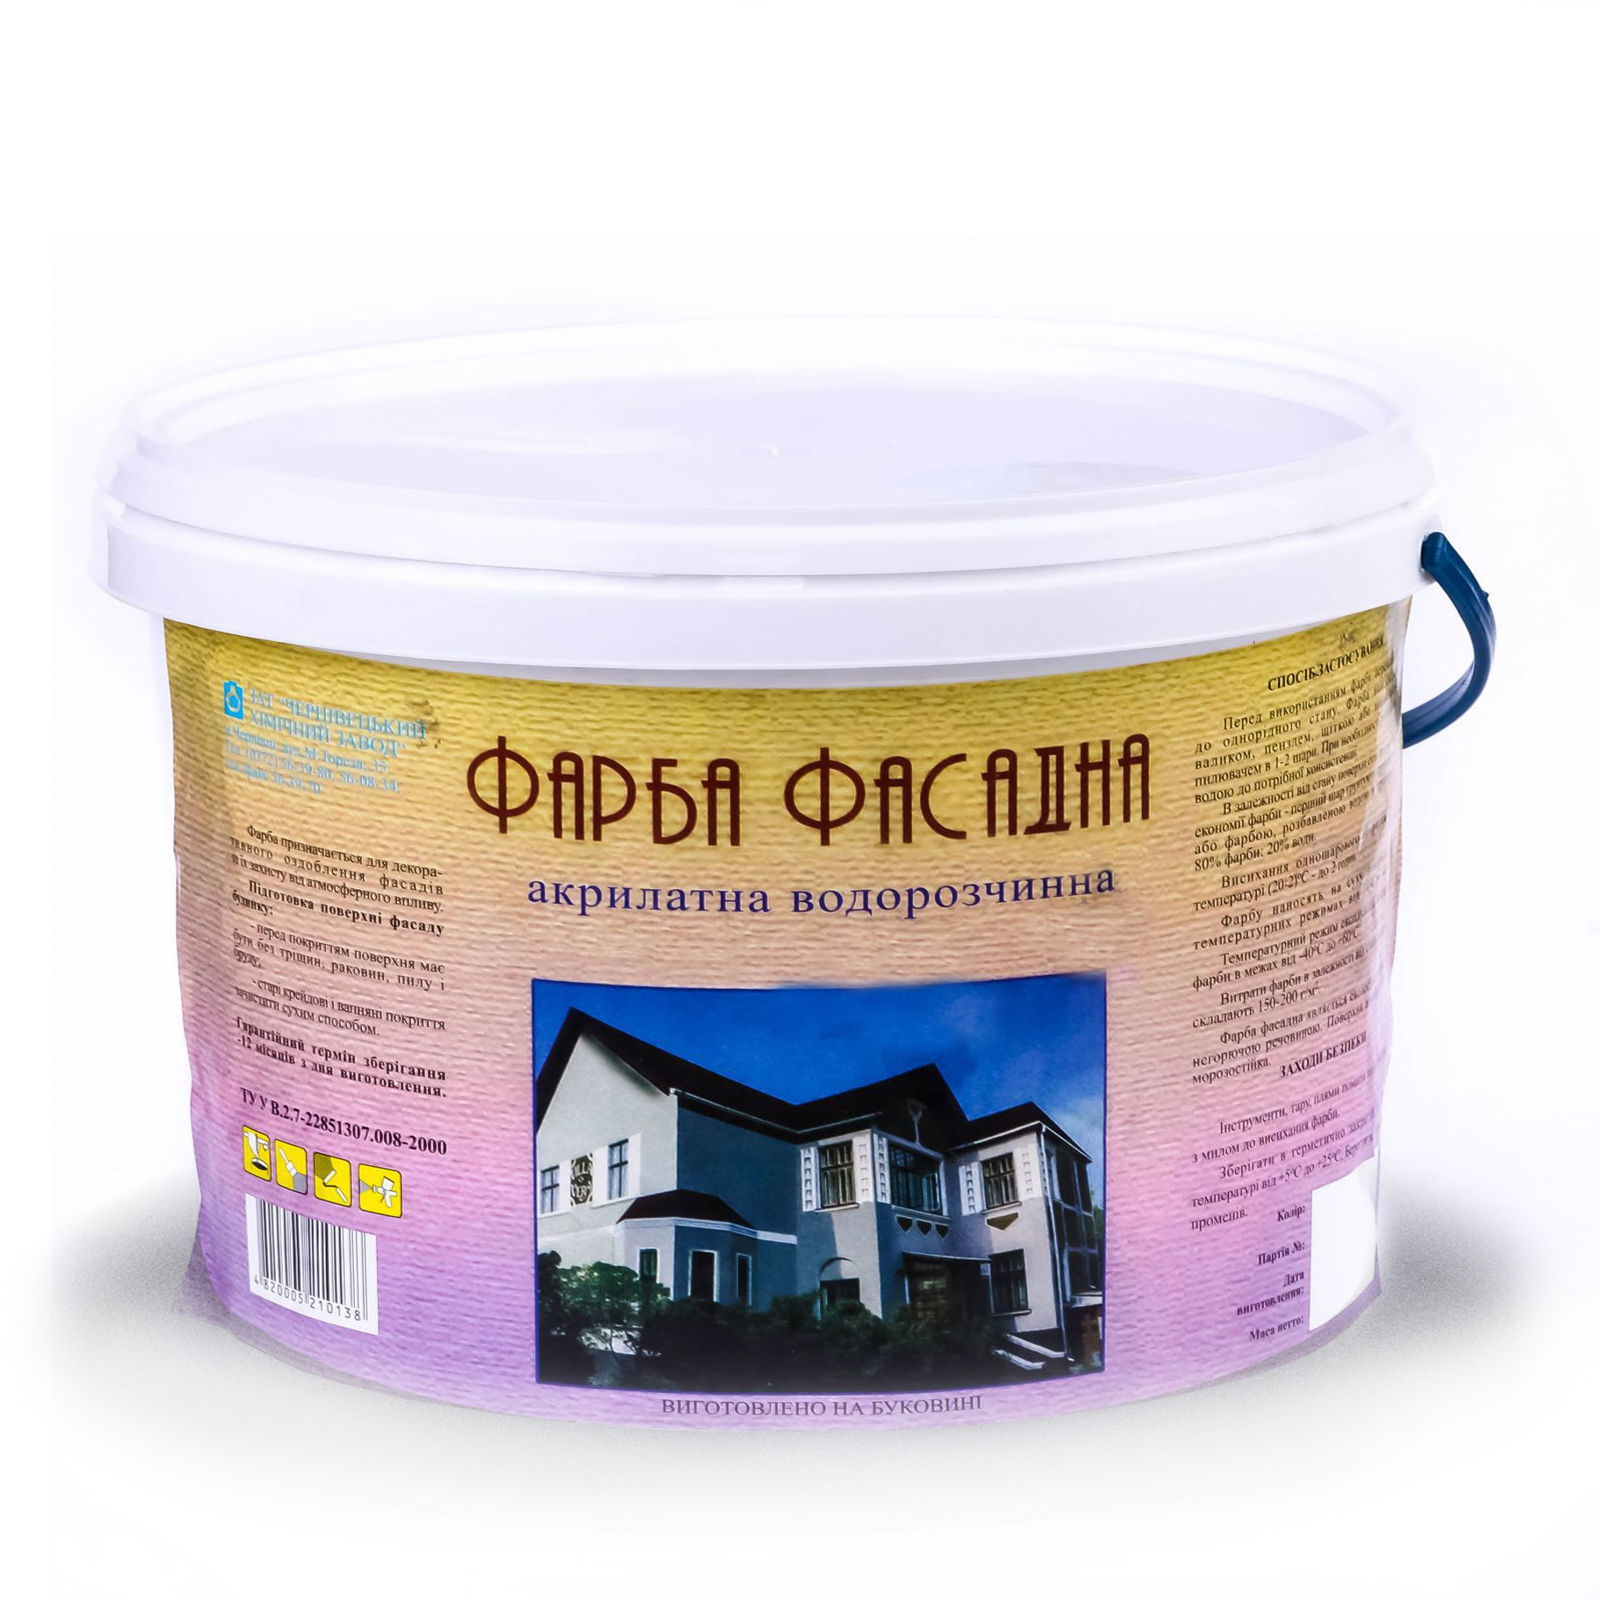 Exterior paint acrylic water-soluble